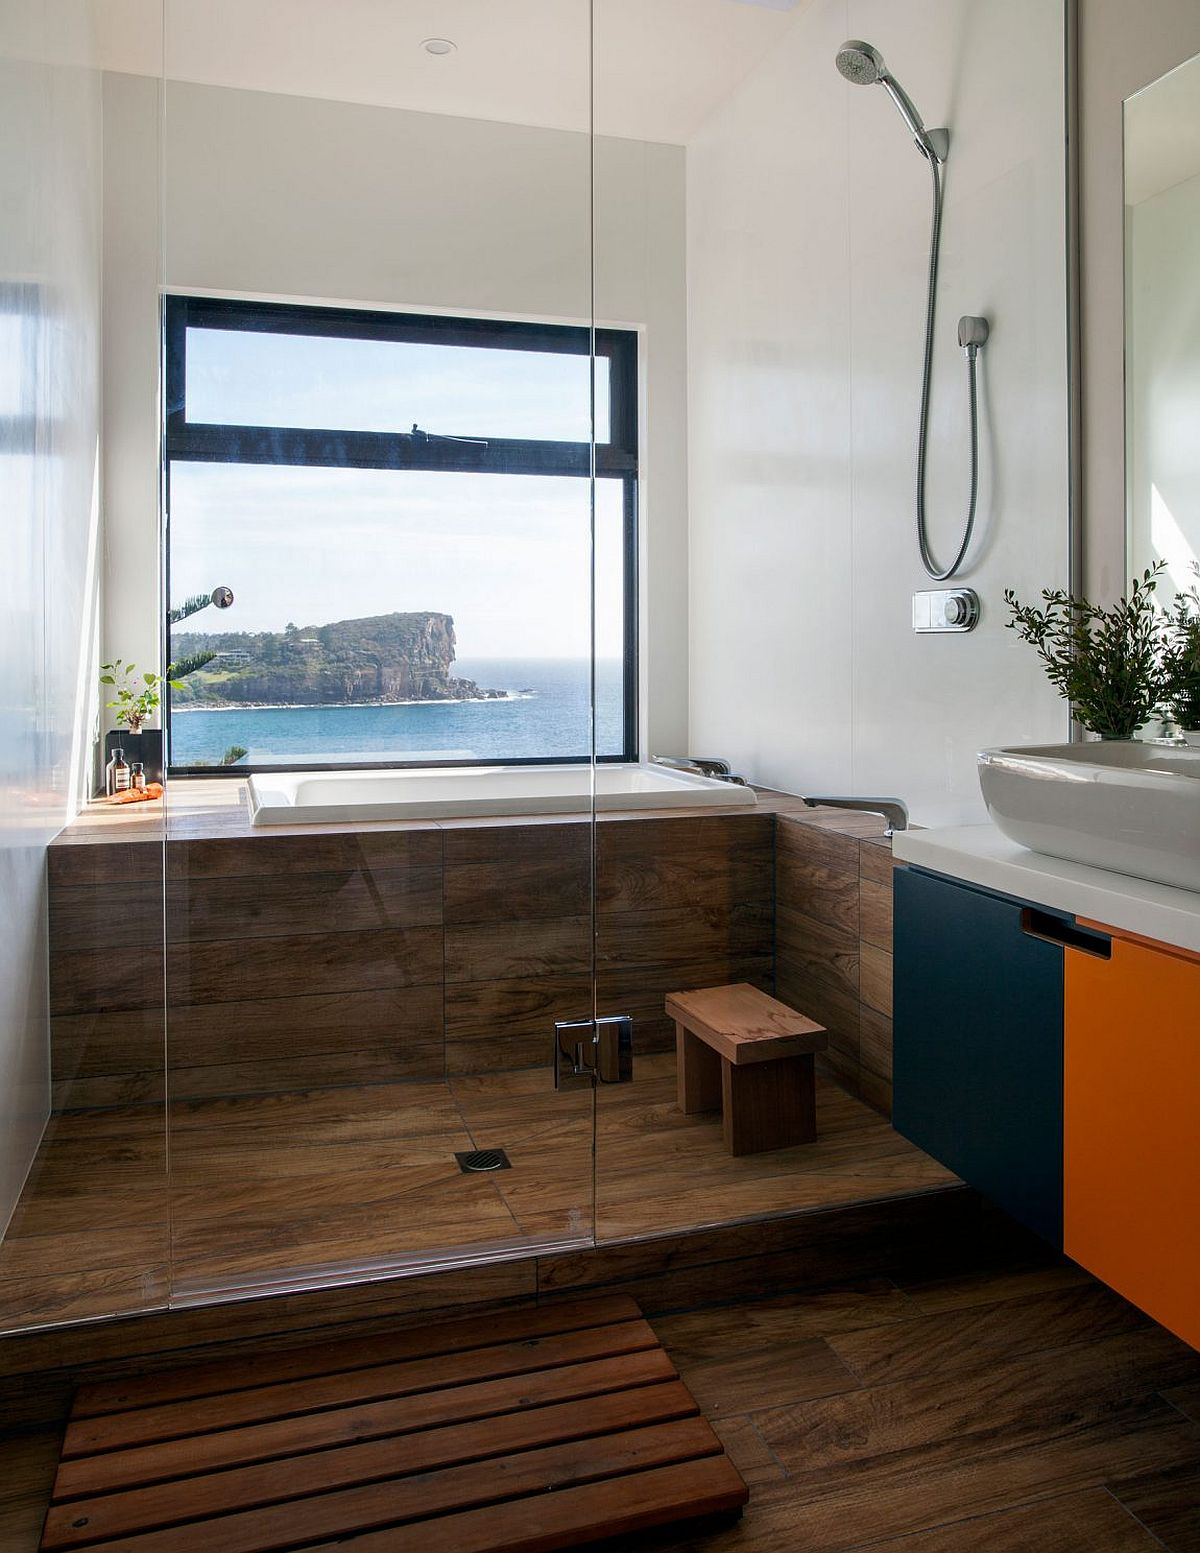 Stunning modern bathroom with a view of the ocean outside the window